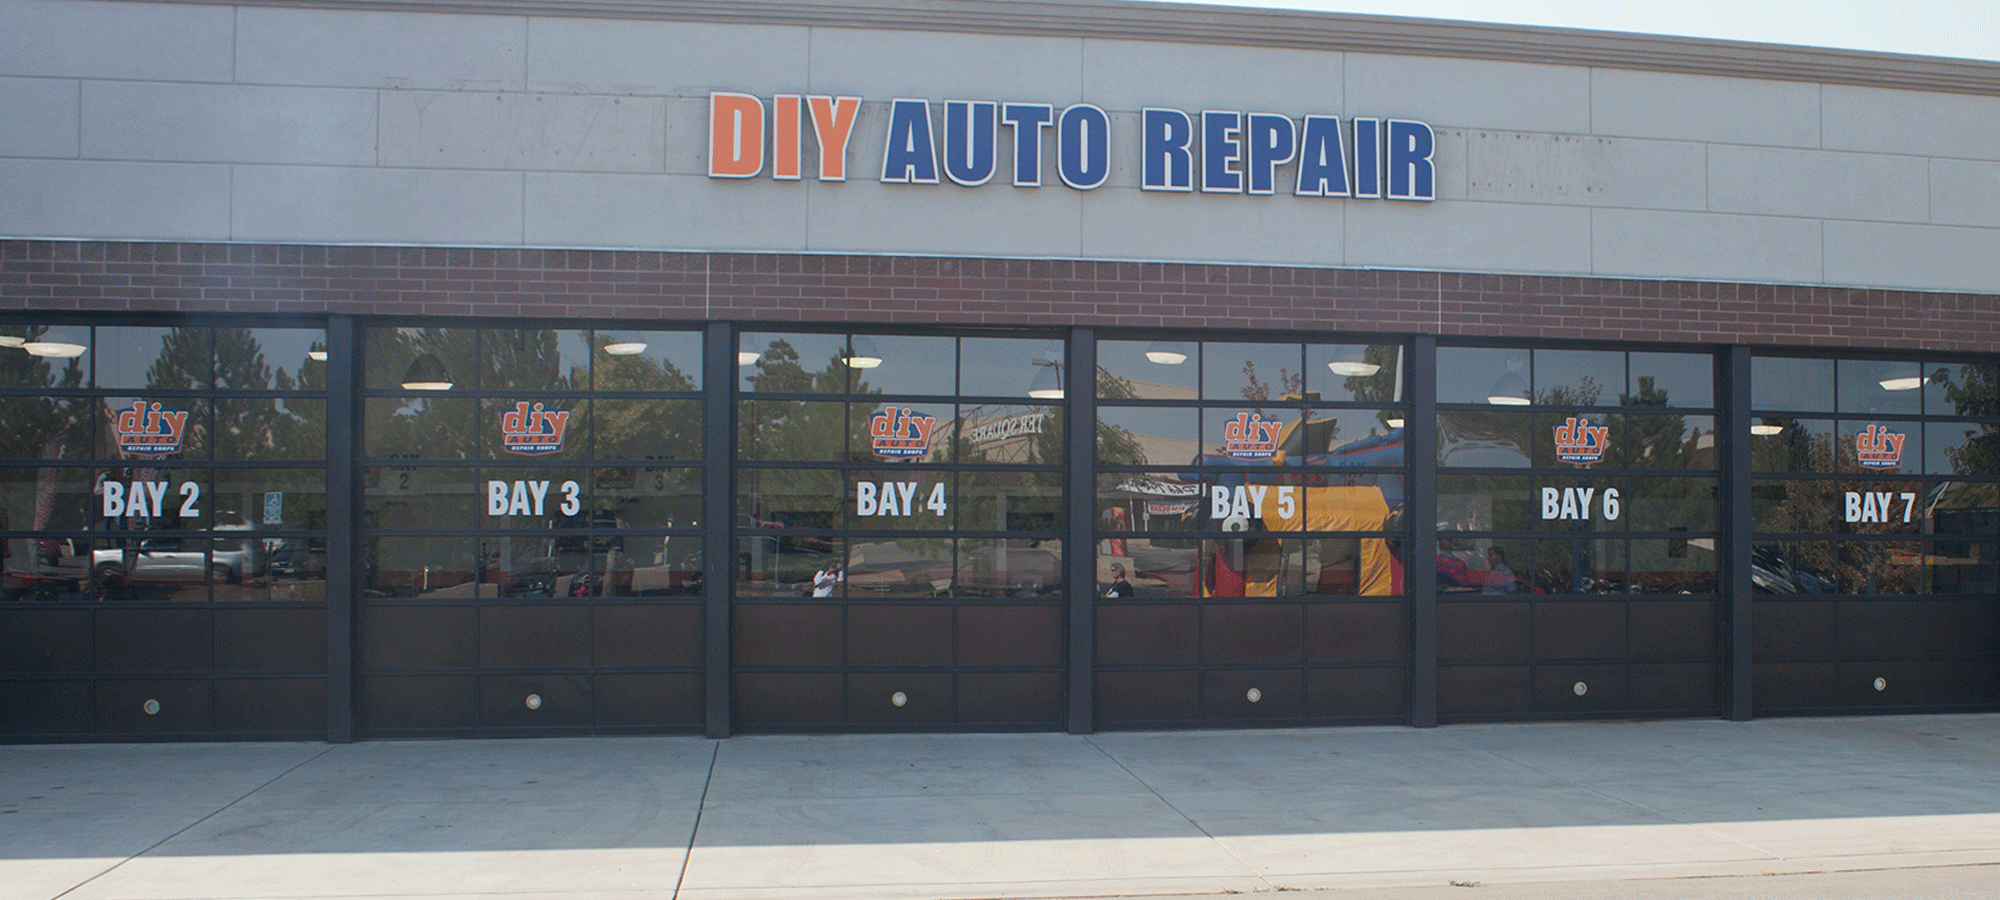 Diy auto repair shops equipped self service garage bays diy auto repair bays for rent solutioingenieria Choice Image